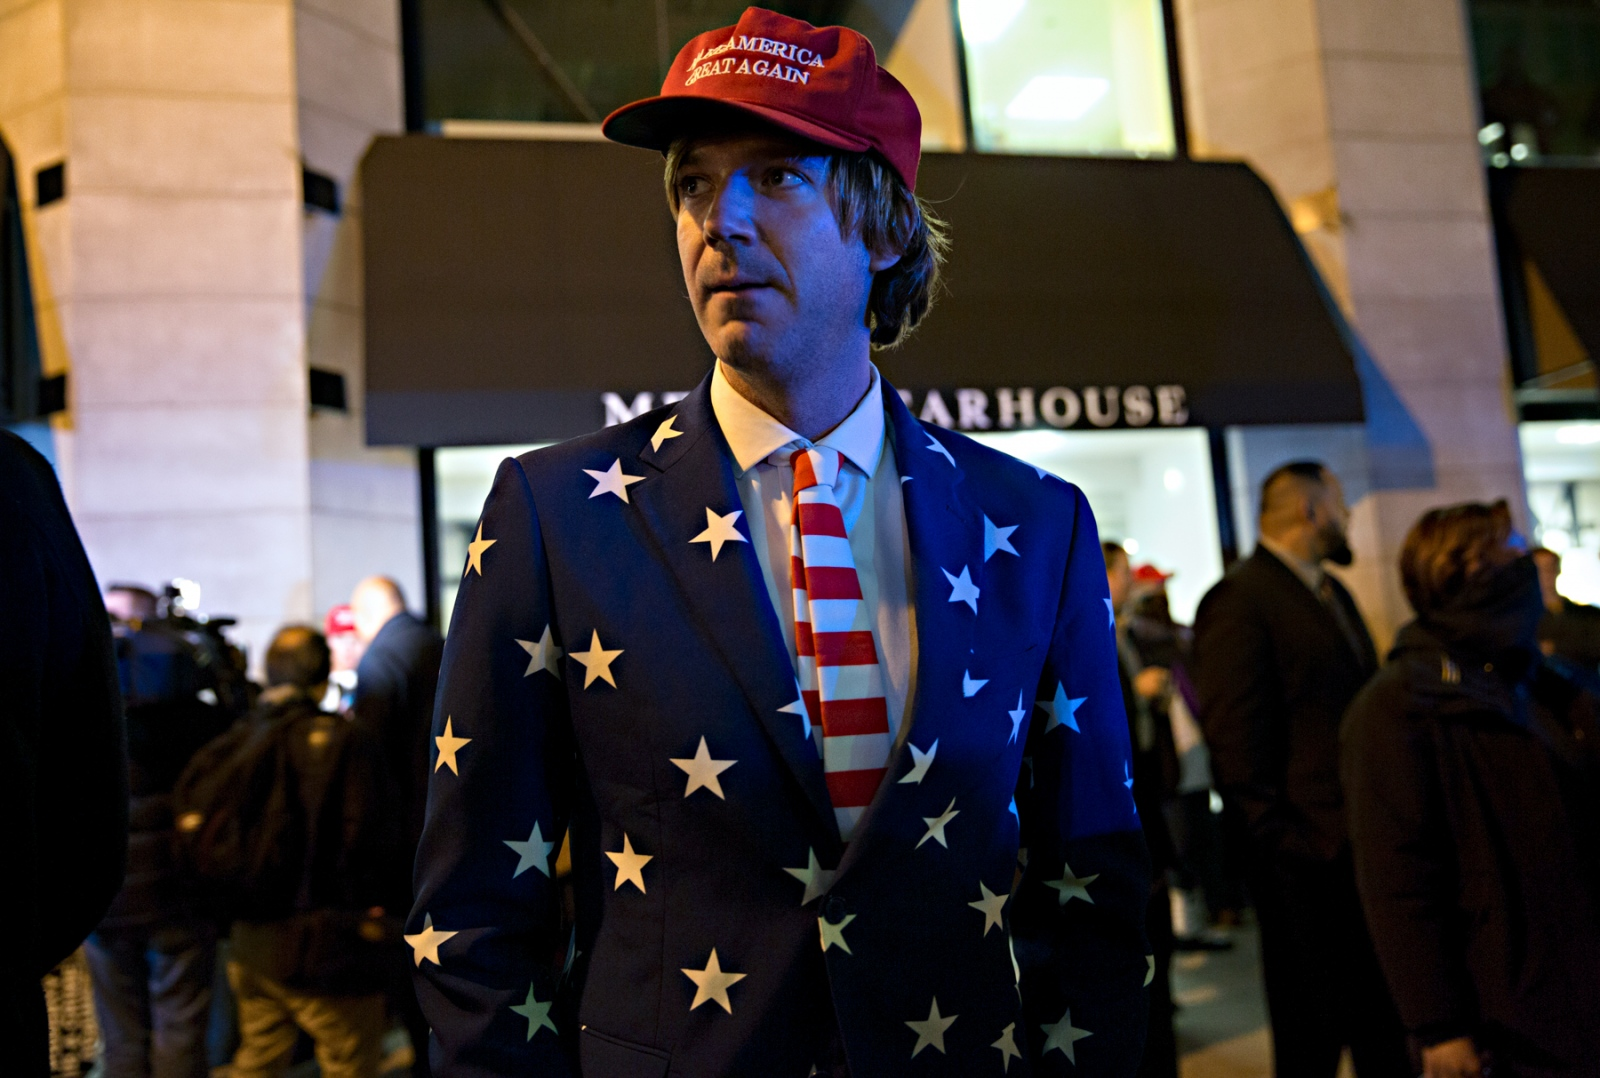 January 19, 2017 - Washington, DC, United States: A supporter of Donald Trump risks his safety and negotiates his way past protestors to a party held in honor of the new President. At times, Donald Trump supporters would cause a steer among the protestors and walk among them waiving flags and various paraphernalia with Trump's picture on them, and at times, the protestors would assault and beat those who would cause such a provocation.